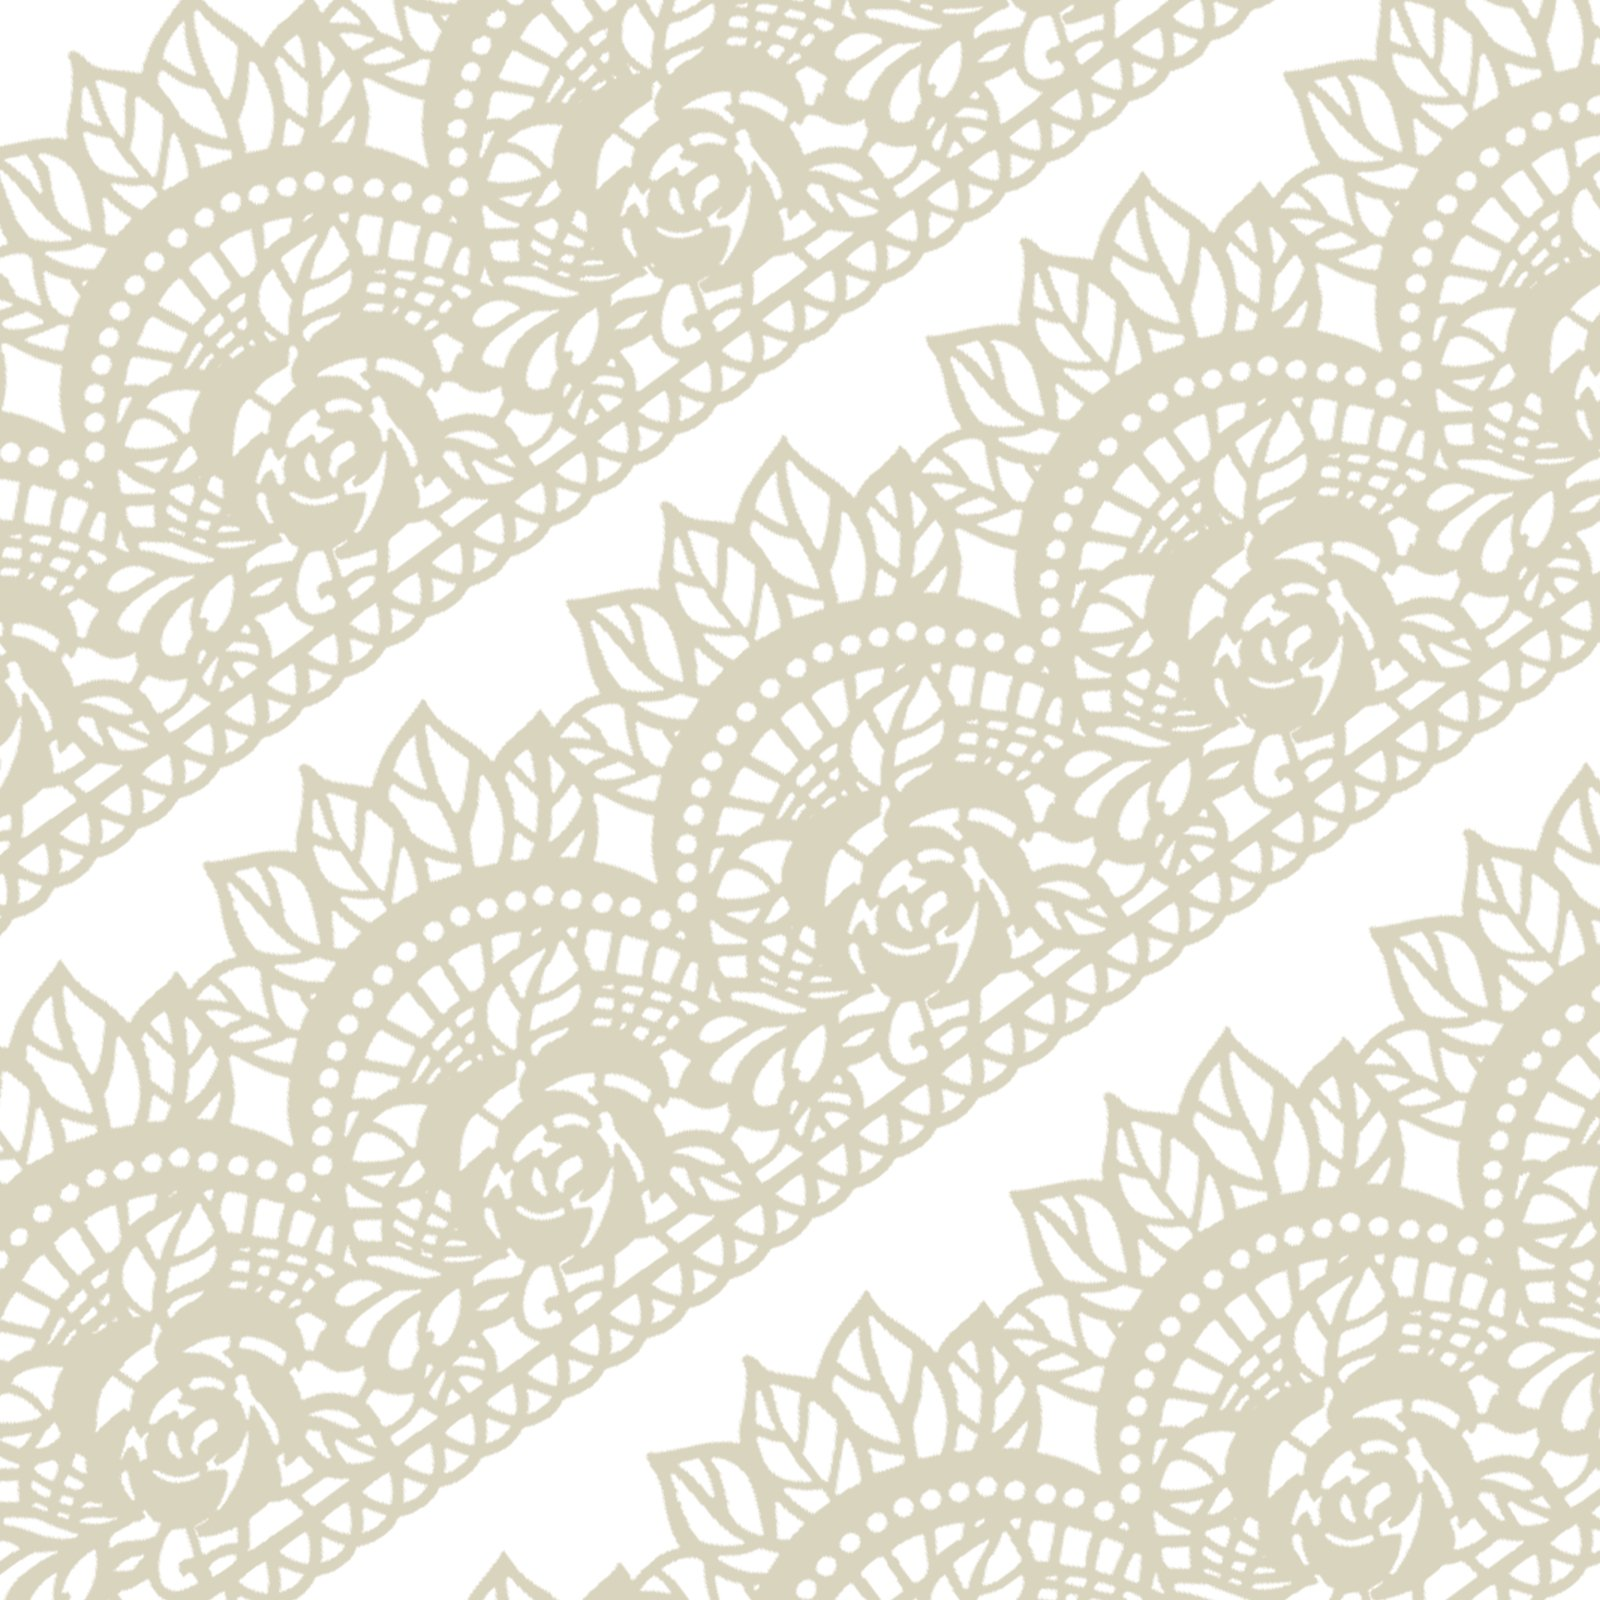 Funshowcase Large Pre-Made Ready to Use Edible Cake Lace Rose Scallop Ivory White 14-inch 10-piece Set